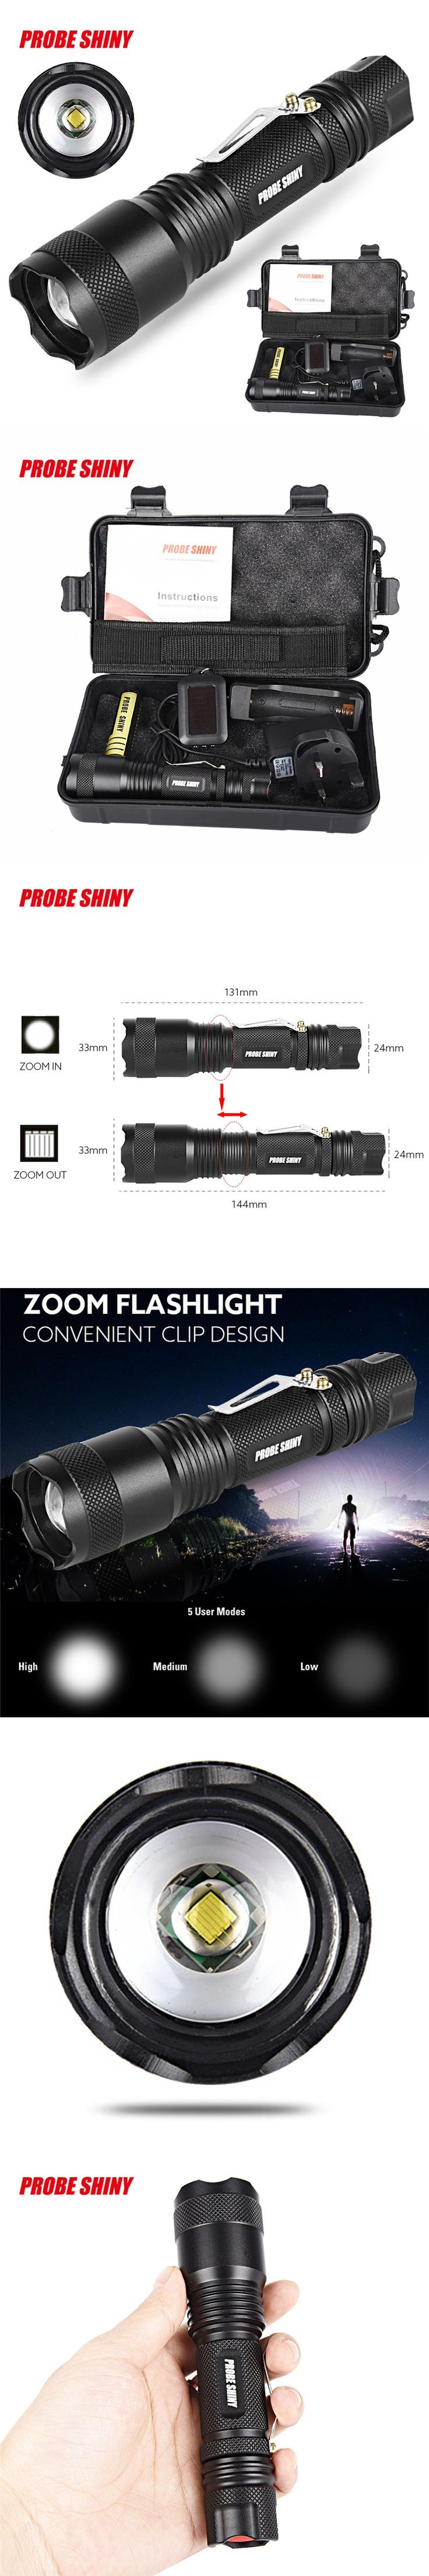 1Set Cycling Bike Front Headlight Bicycle Light X800 Shadowhawk 5000LM Zoomable XML LED Tactical Flashlight +18650 Battery F22